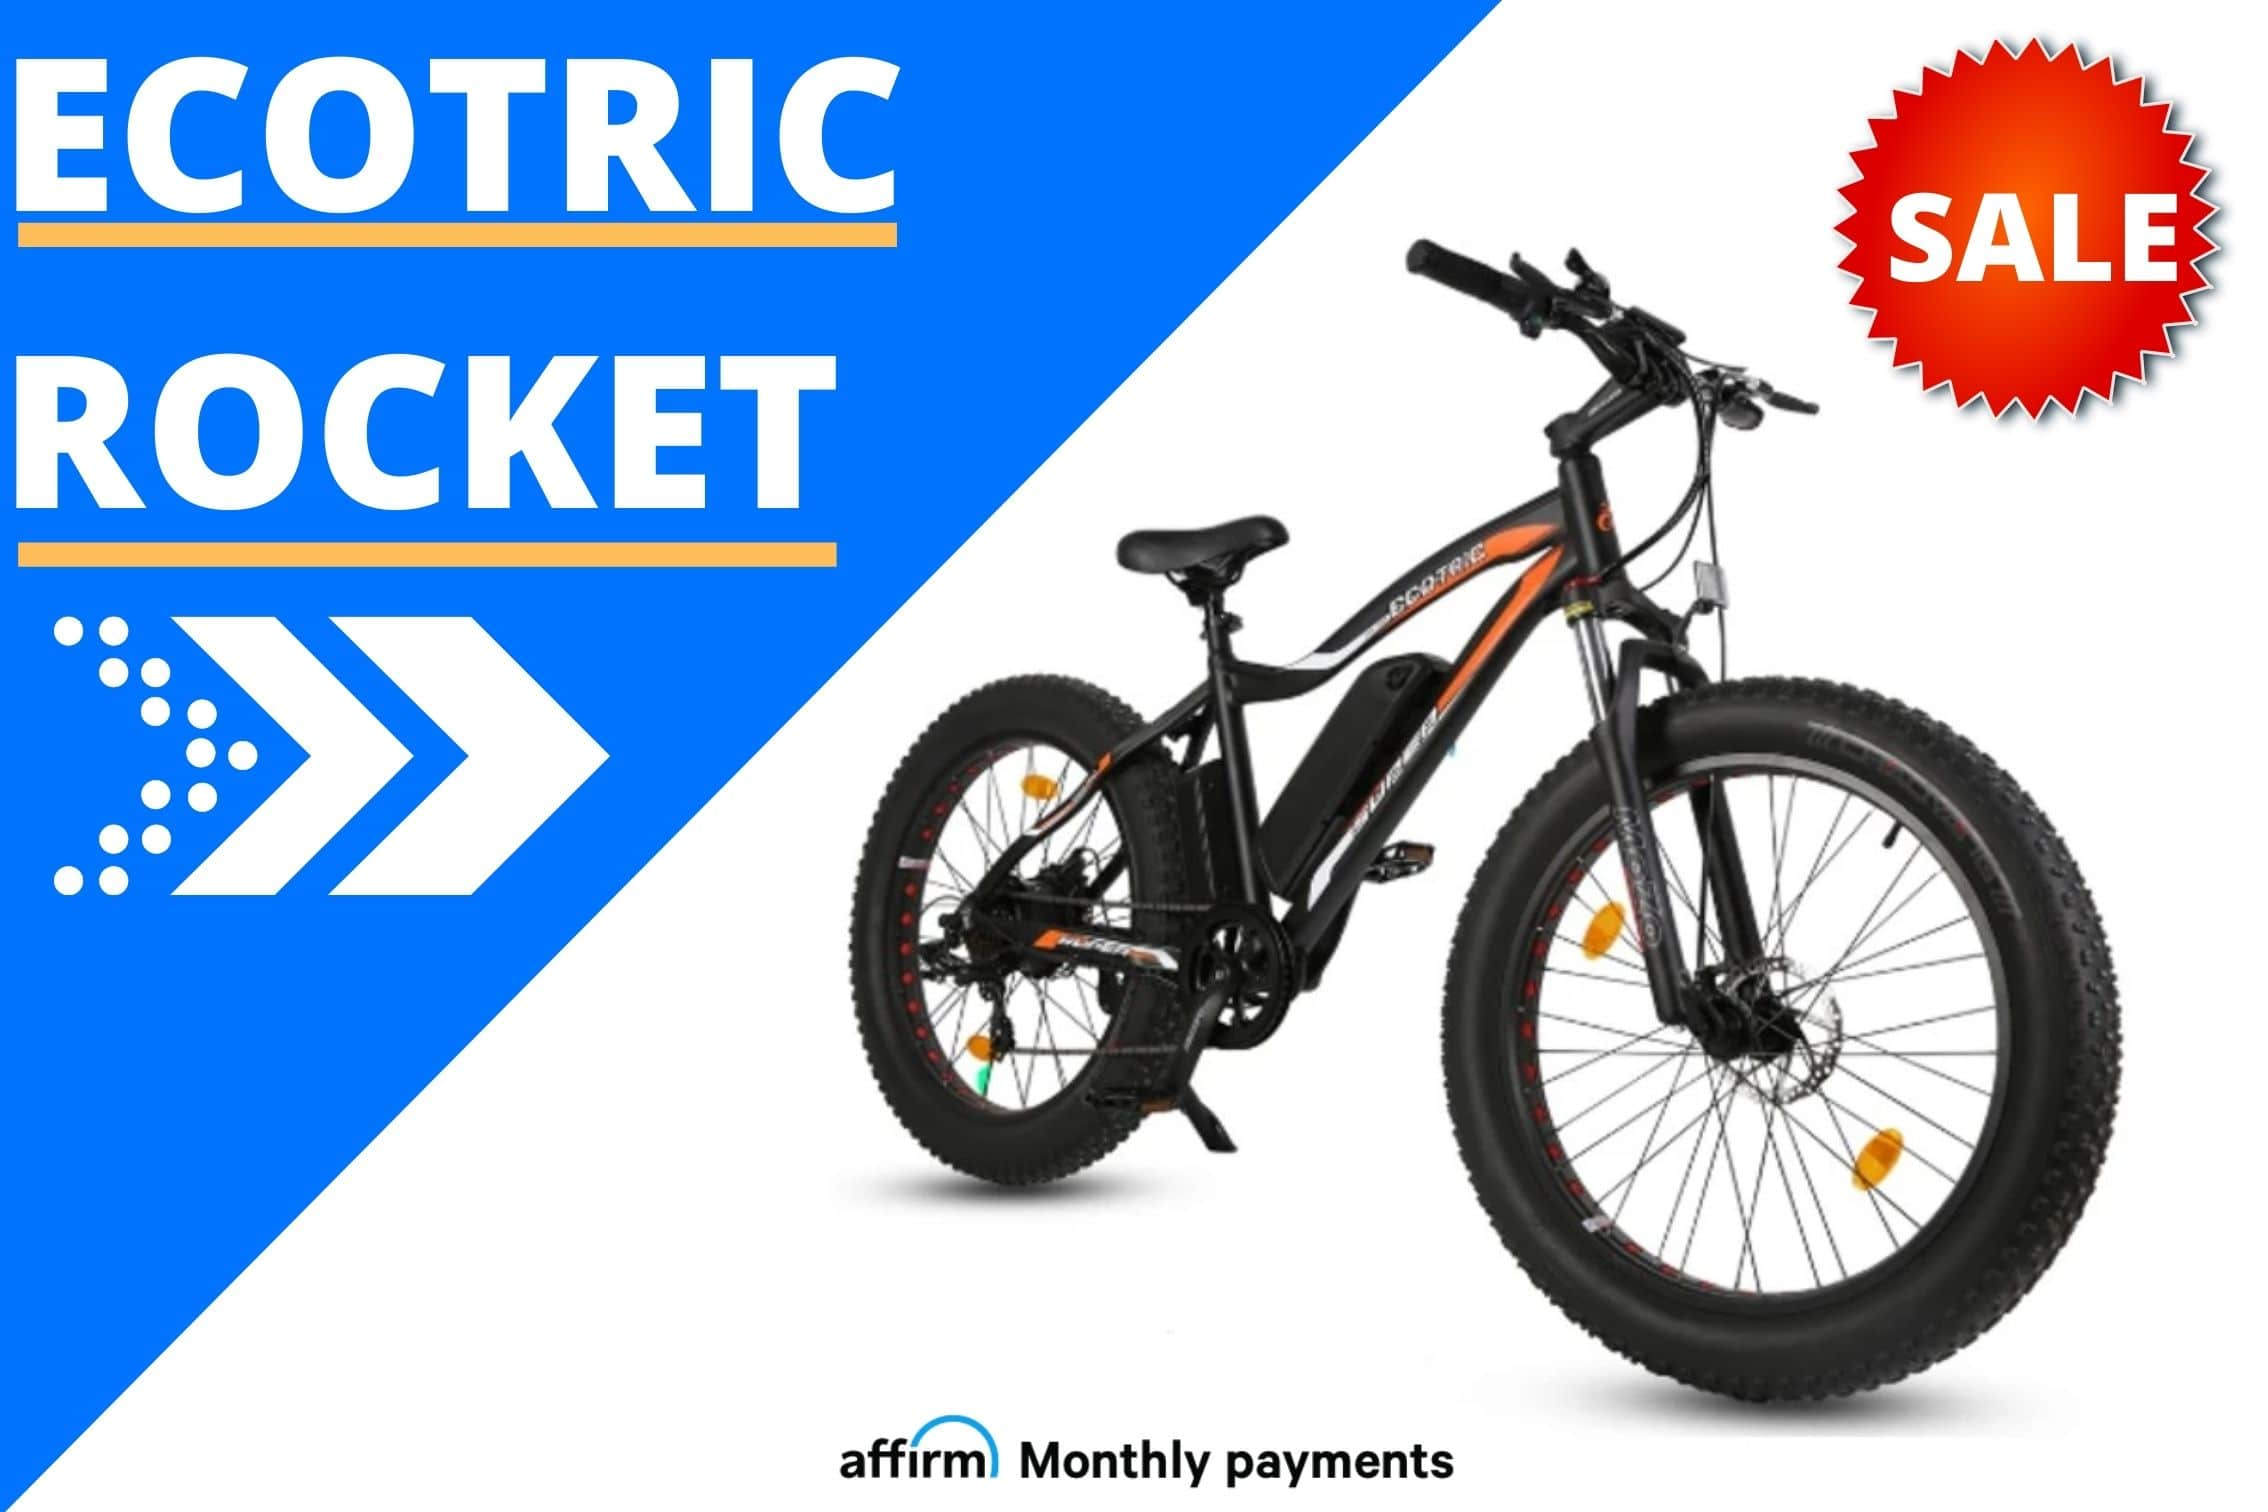 Ecotric Fat Tire Rocket